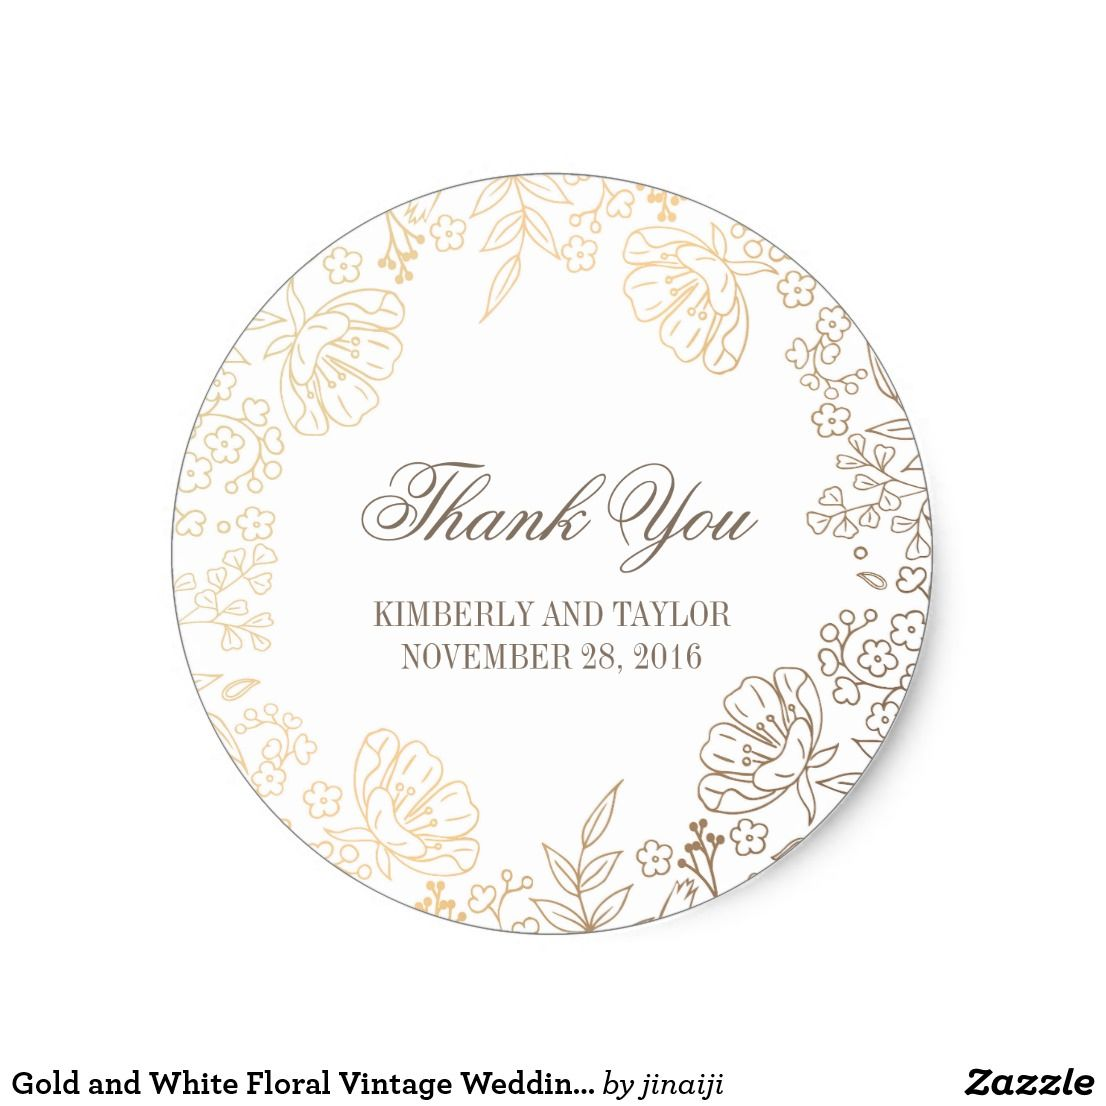 Gold and White Floral Vintage Wedding Thank You